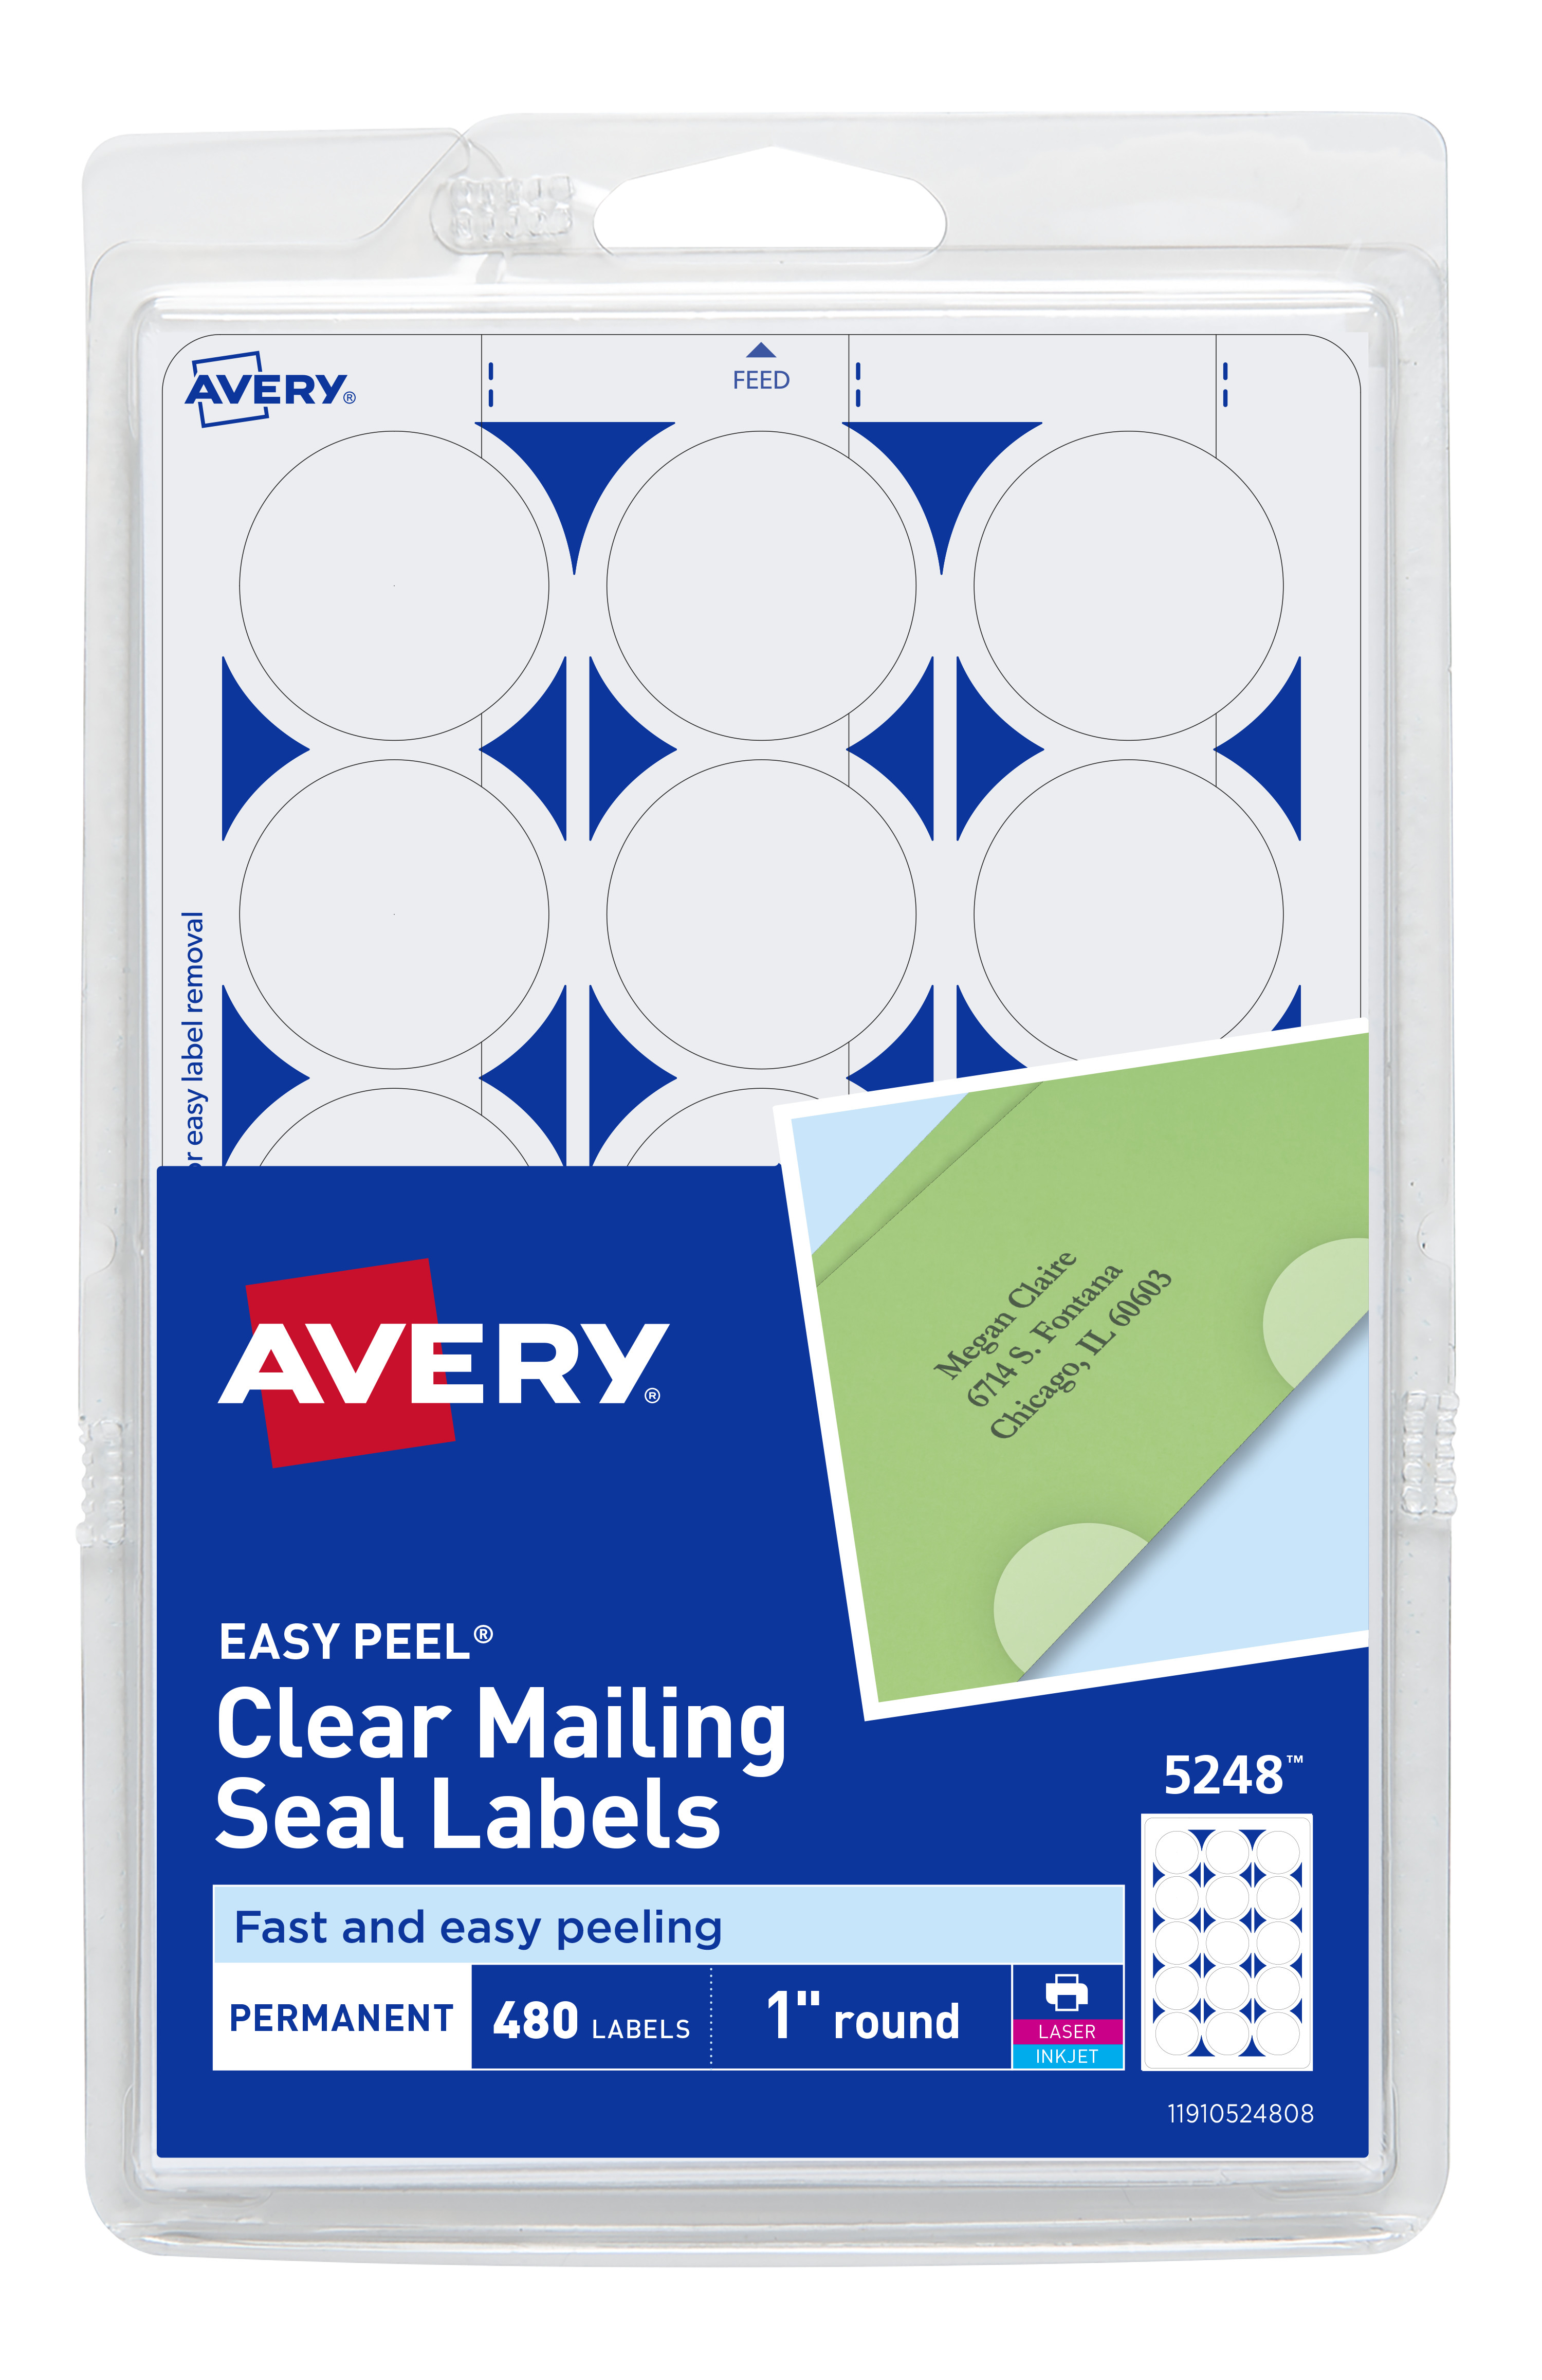 It is a picture of Genius Clear Mailing Seal Labels